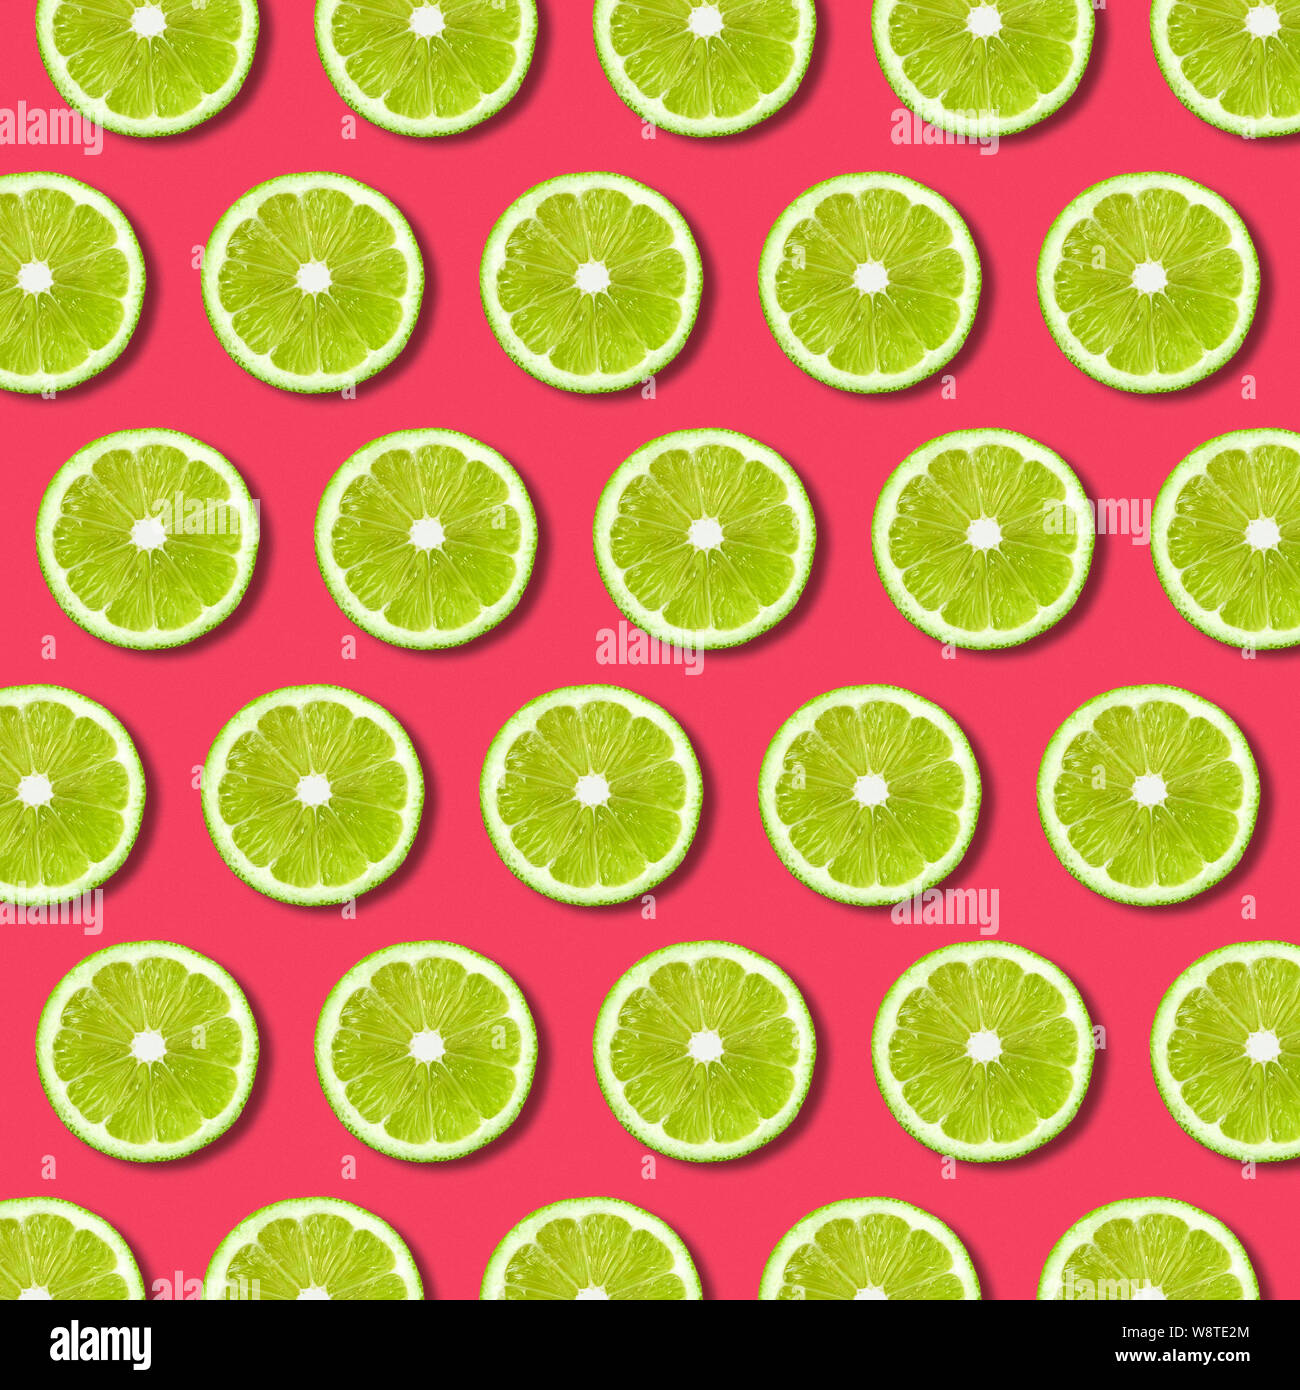 Vibrant fruit pop art background with green lime slices on red background. Minimal flat lay food pattern and texture Stock Photo